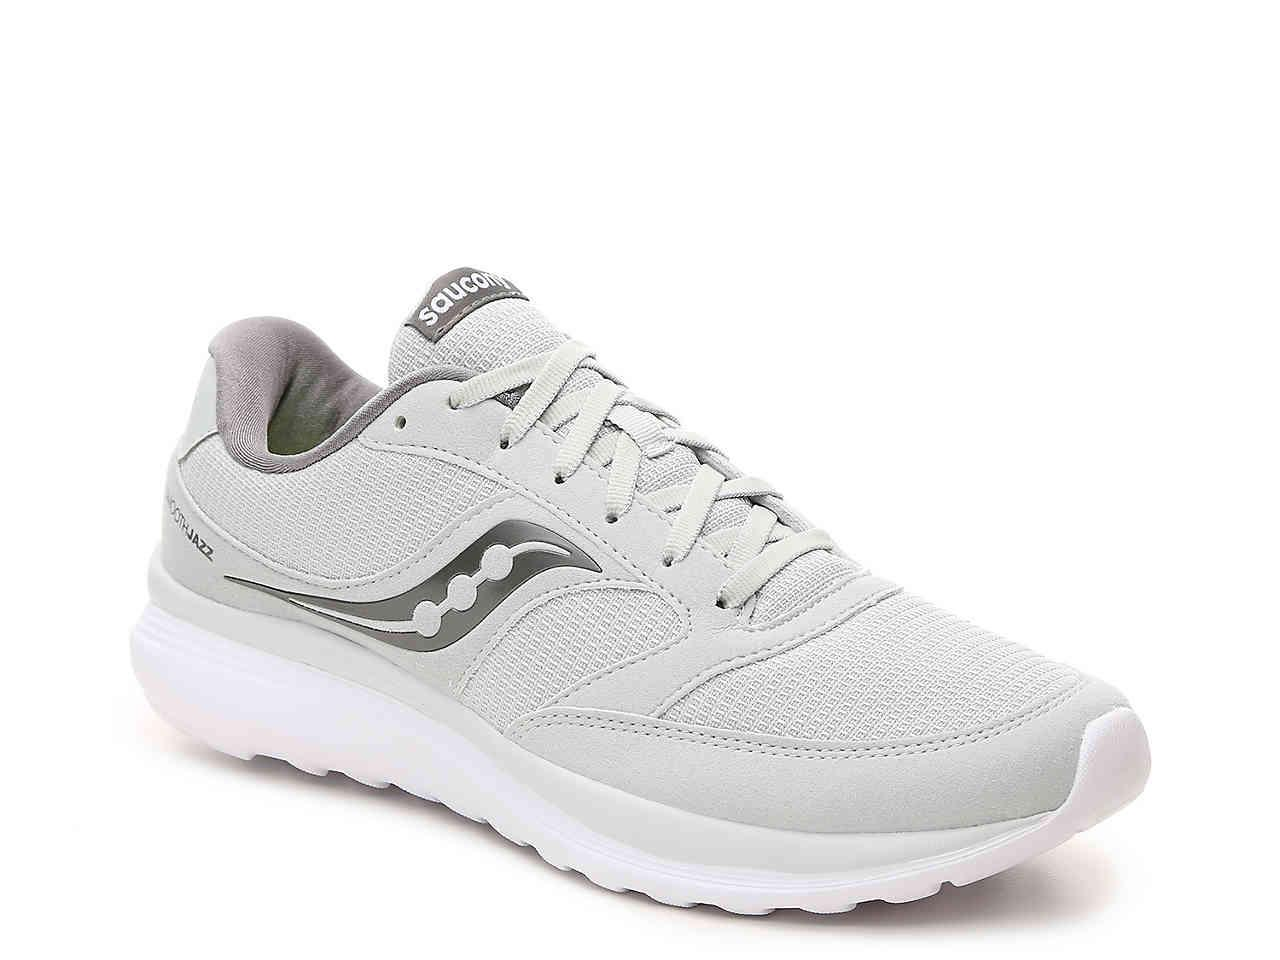 dd7a6a07d149 Lyst - Saucony Smooth Jazz Training Shoe in Gray for Men